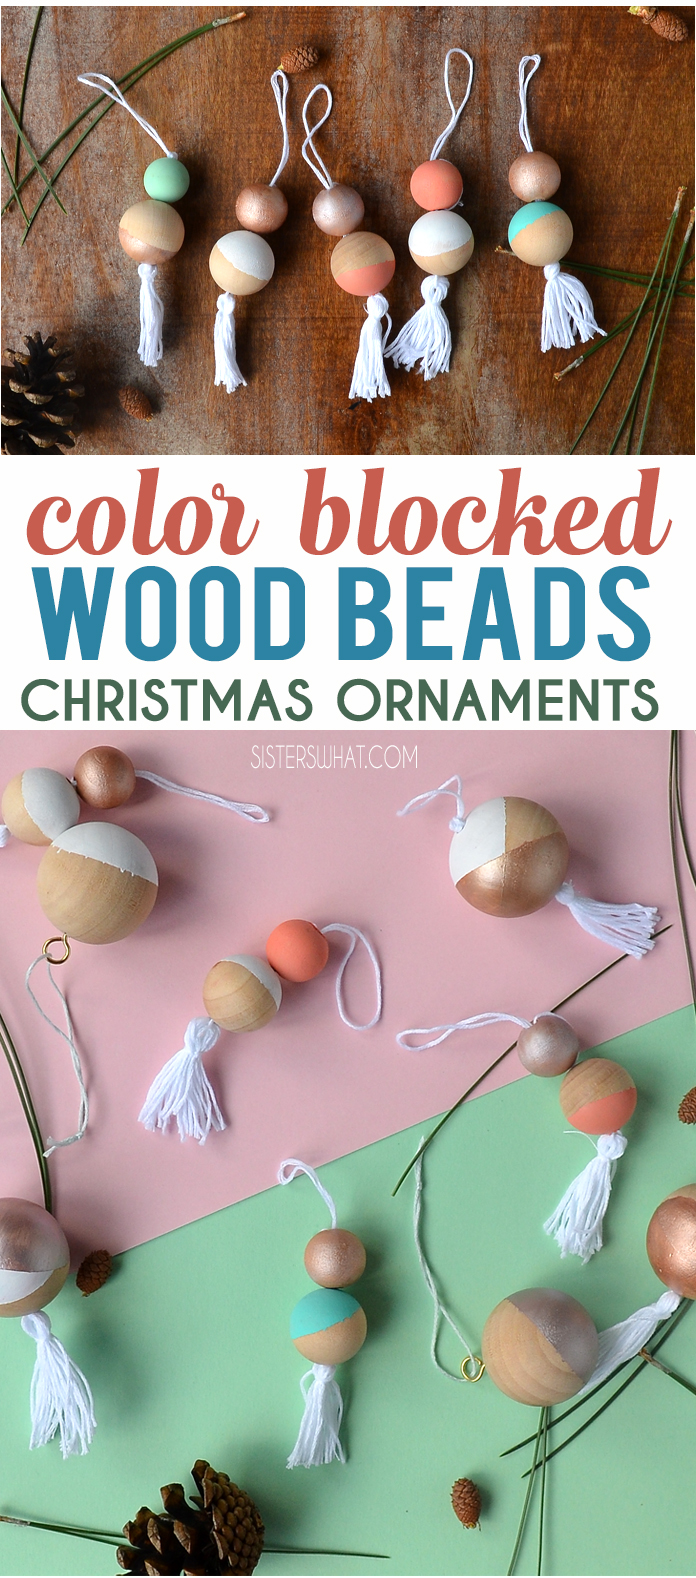 DIY color blocked wood beads Christmas ornaments